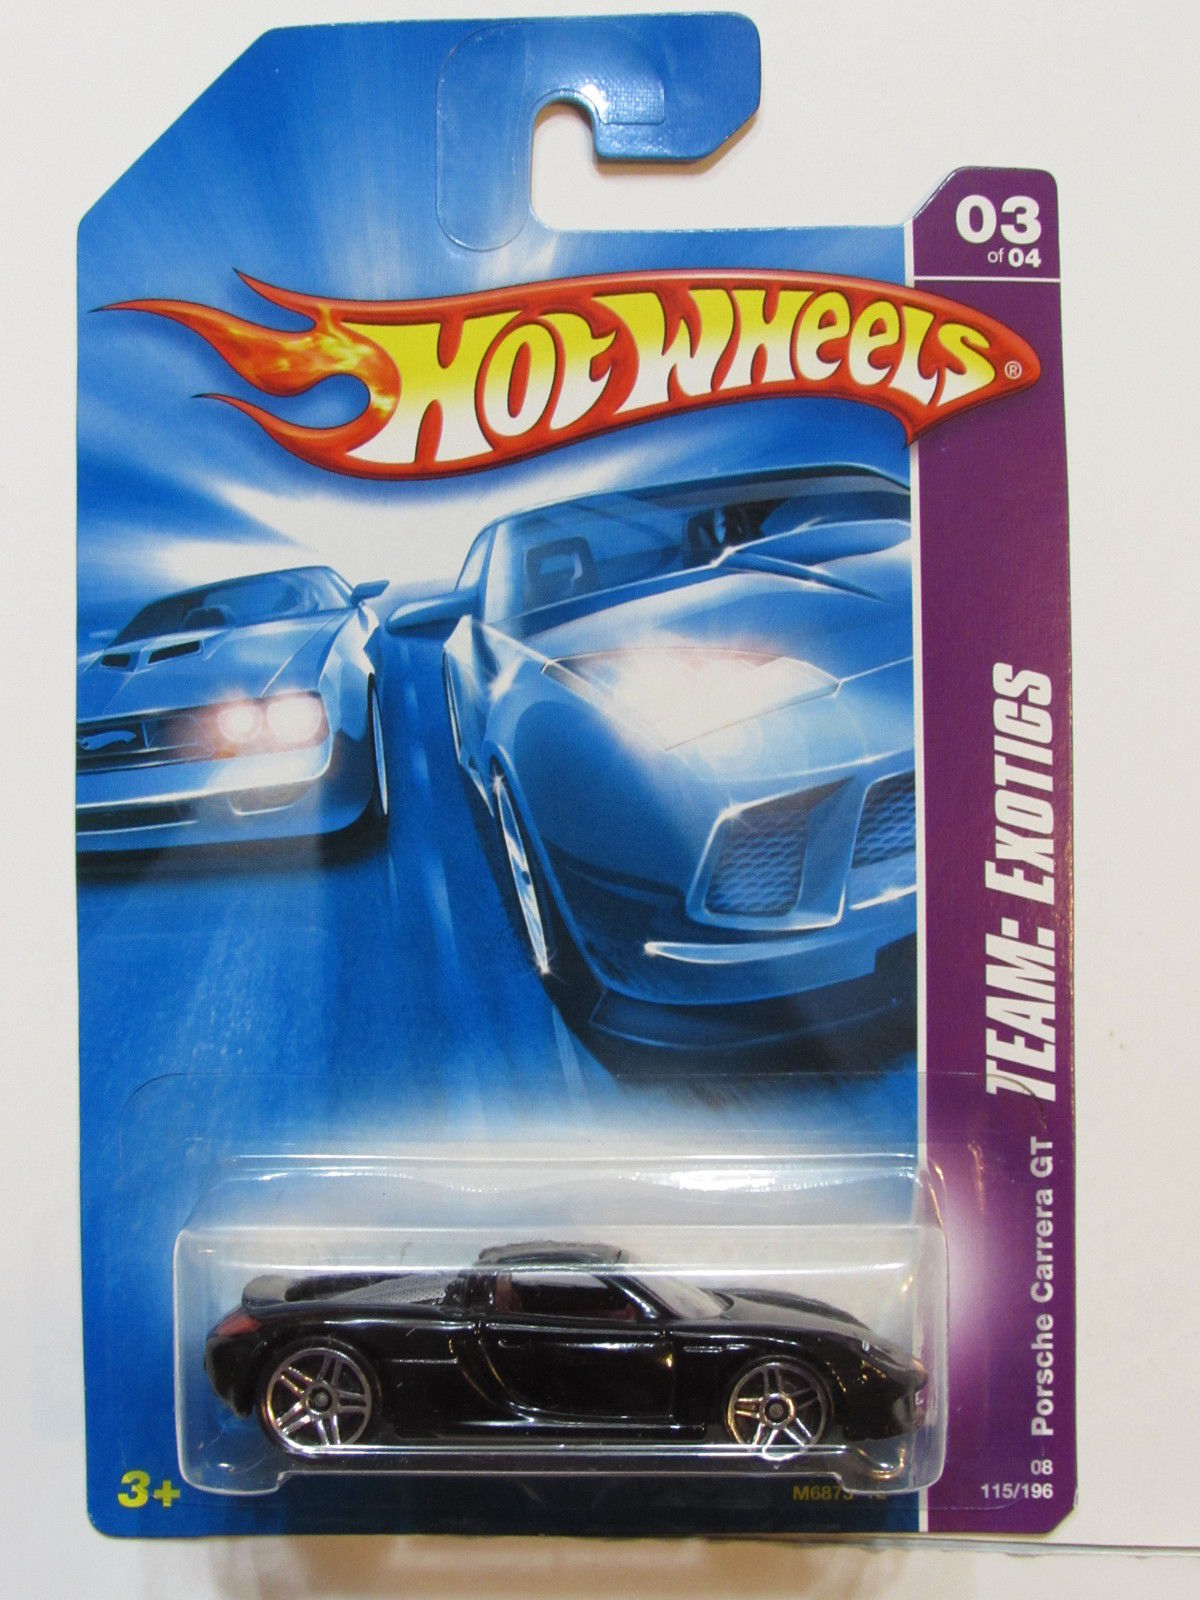 HOT WHEELS 2008 TEAM EXOTICS PORSCHE CARRERA GT BLACK